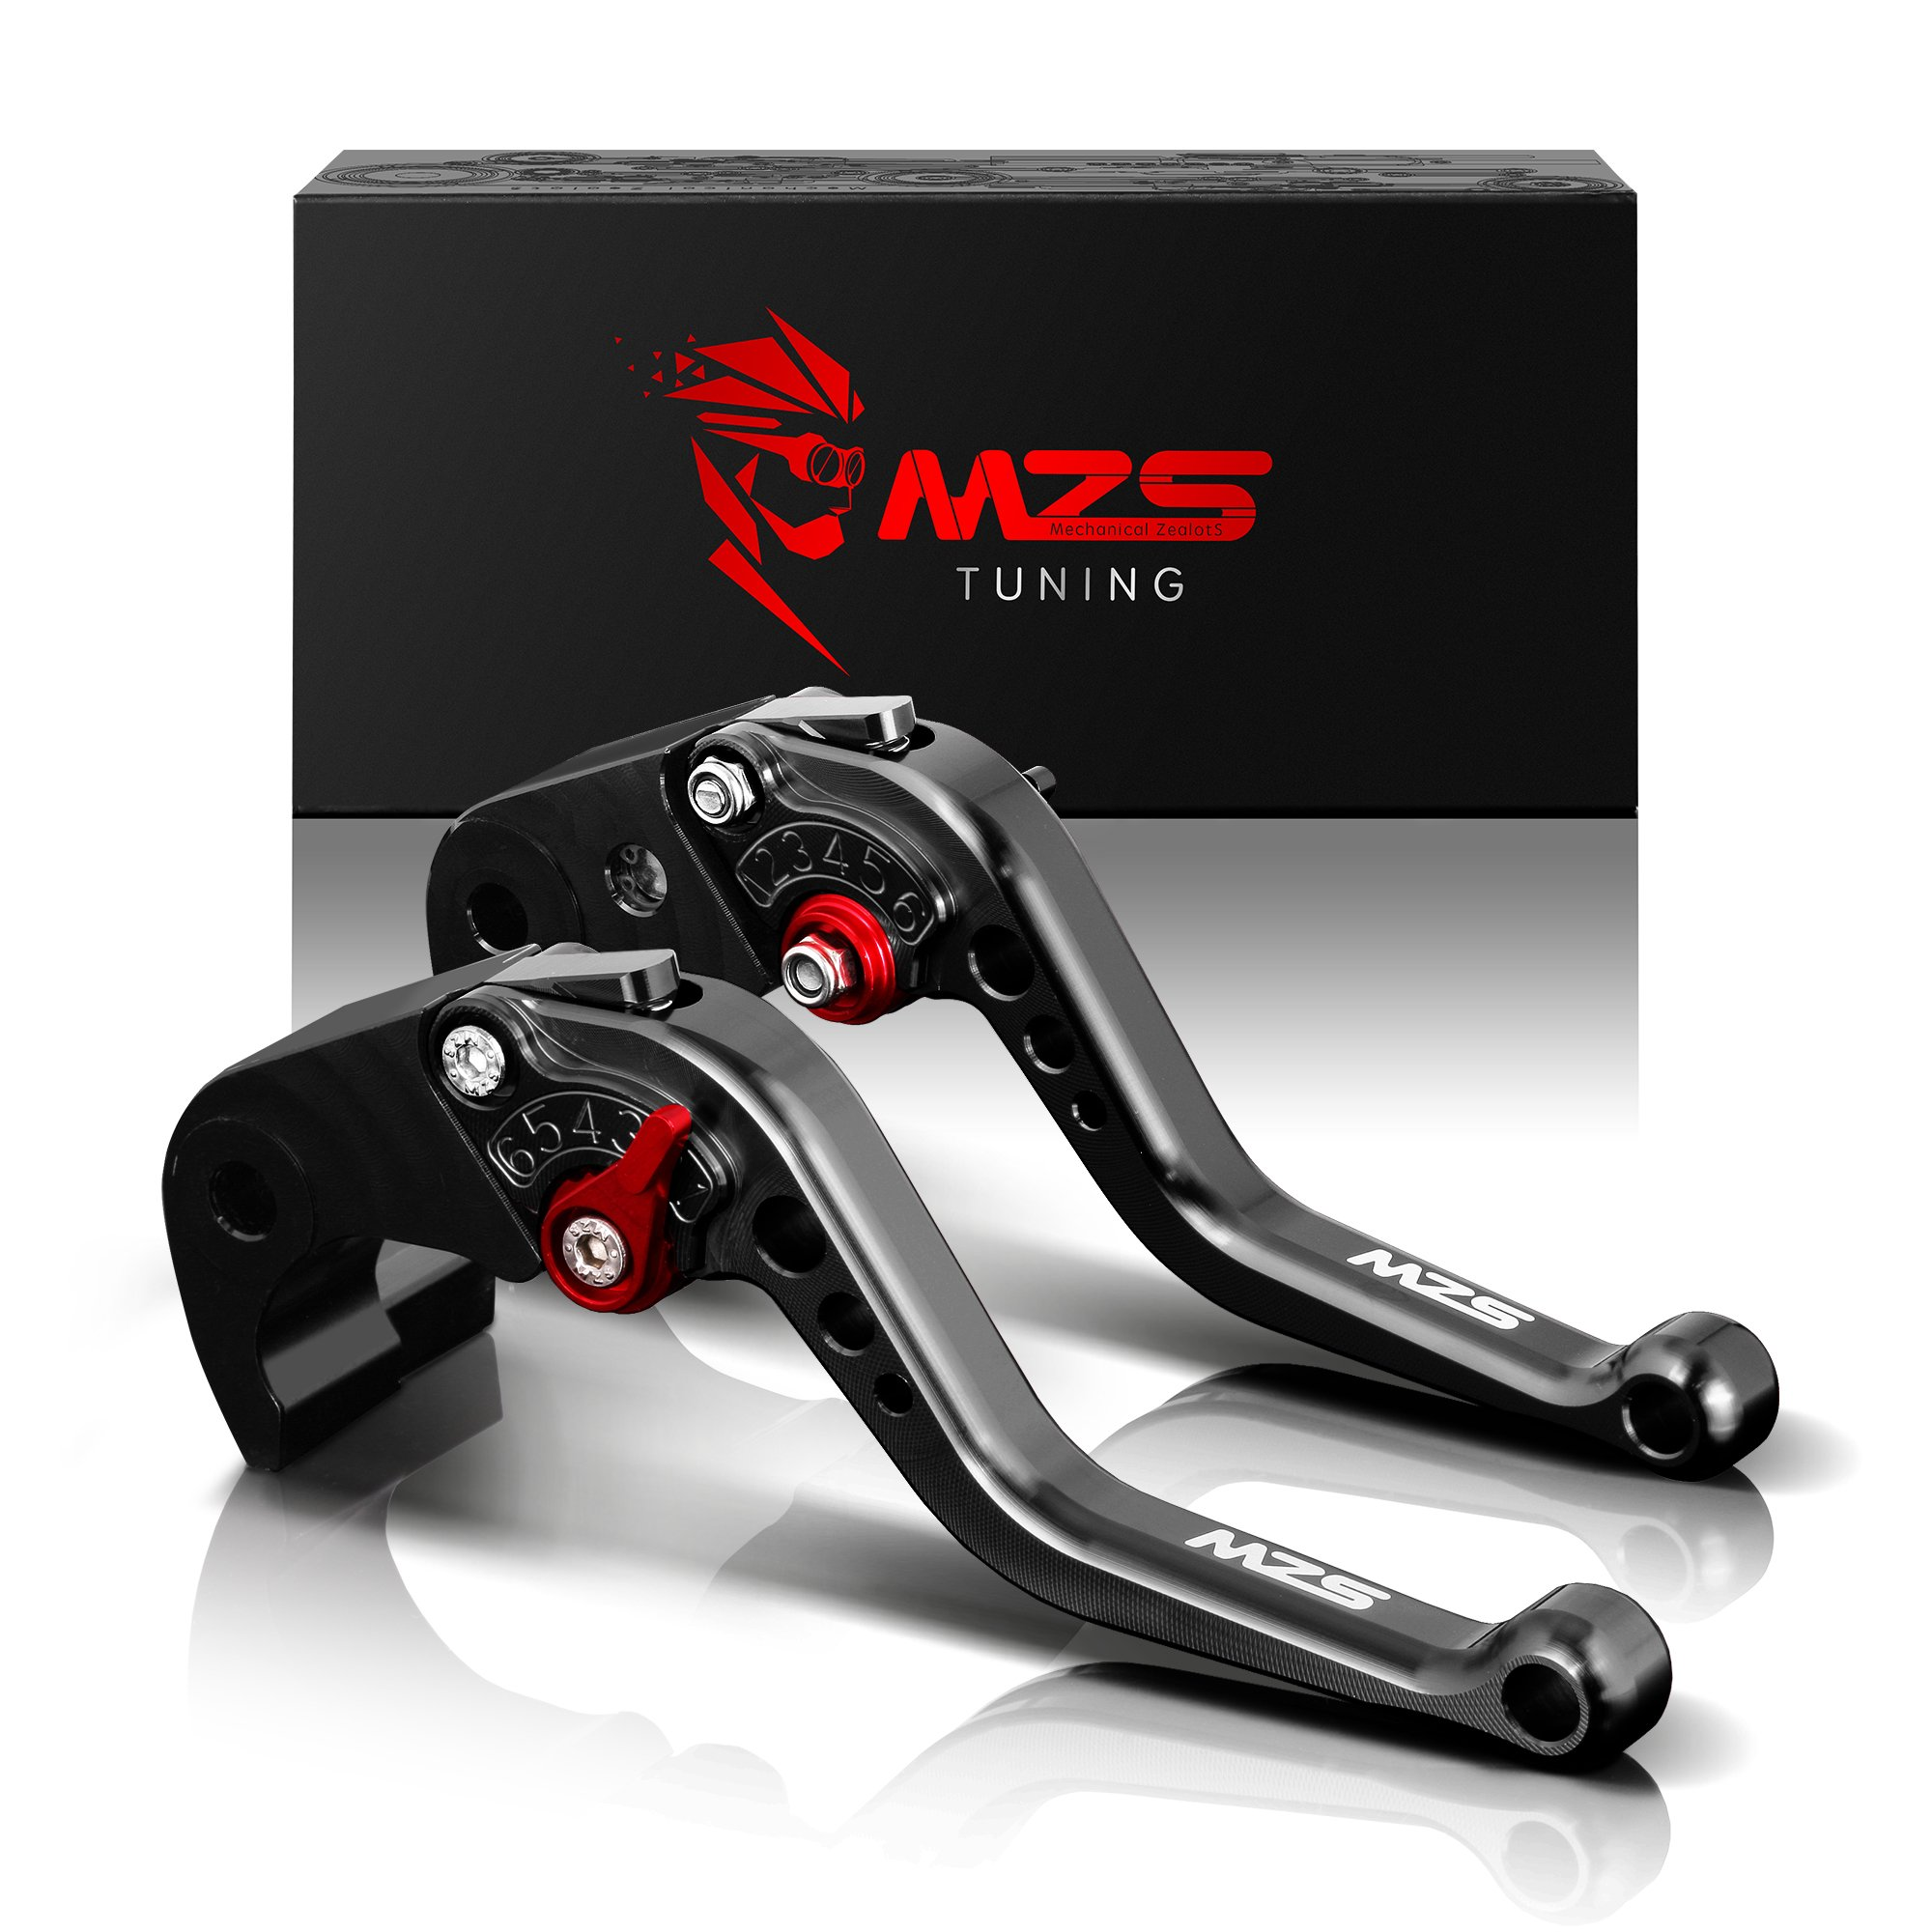 MZS Short Brake Clutch Levers for Kawasaki Z750R 2011-2012,Z1000 2007-2016,Z1000SX/NINJA 1000/Tourer 2011-2016,ZX6R/636 2007-2018,ZX10R 2006-2015 Black by MZS